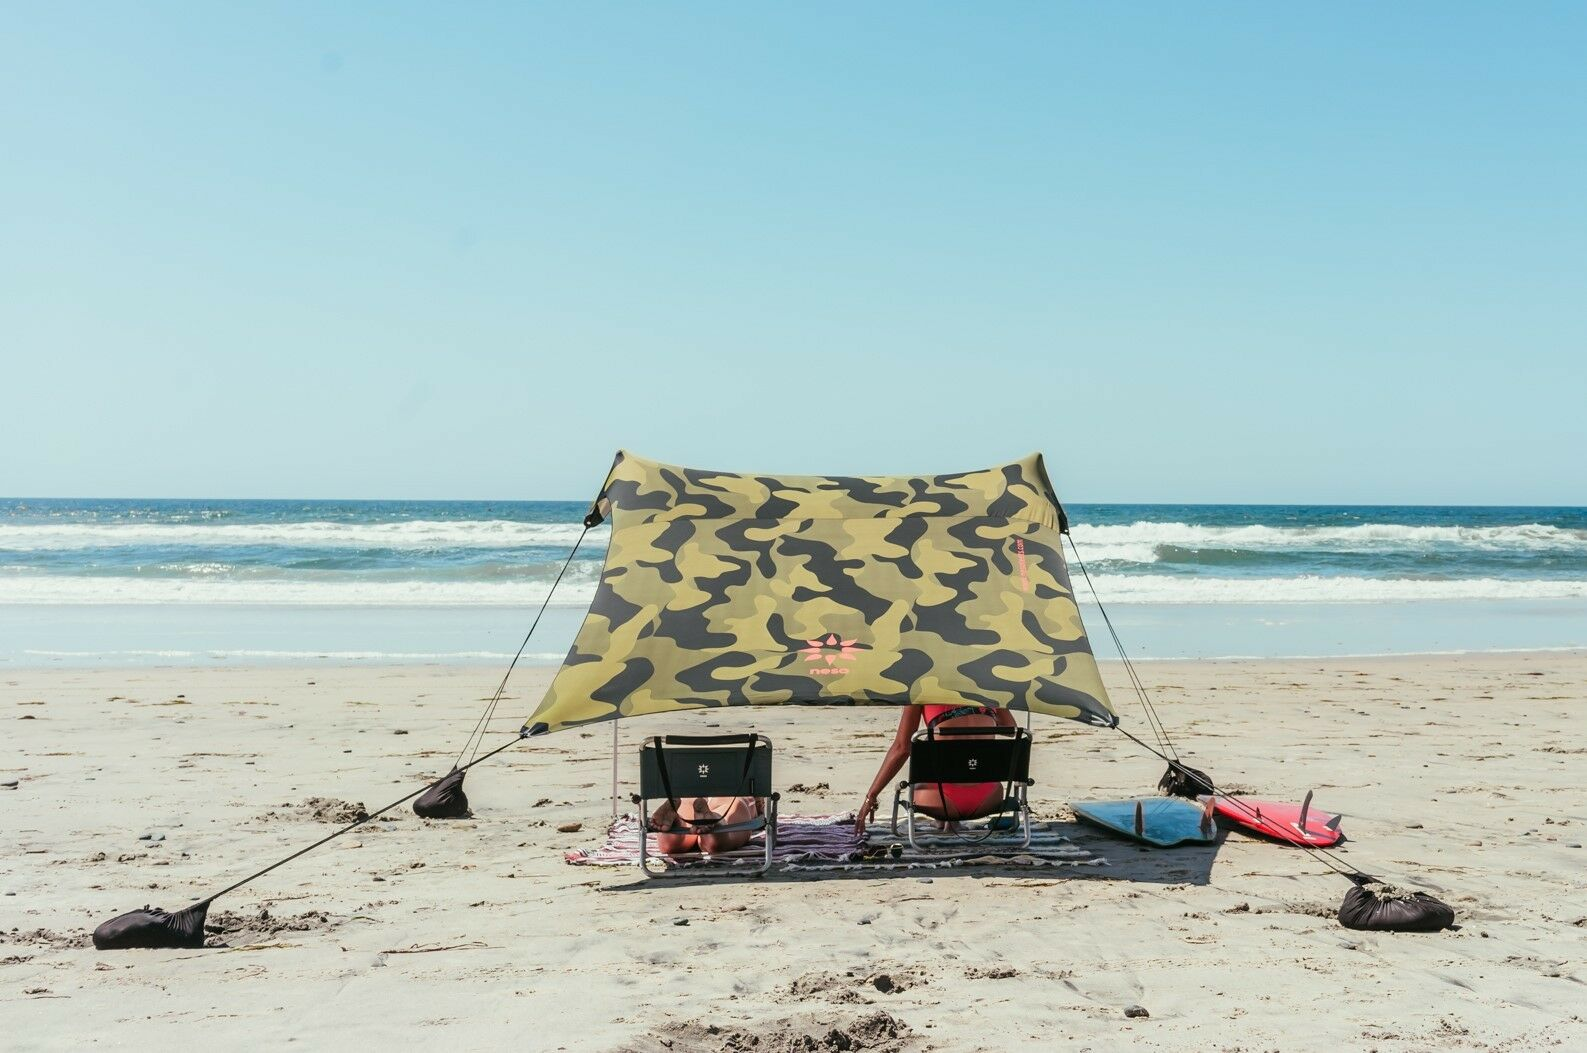 Neso Tents Beach Tent with Sand Anchor, Portable  Canopy Sun Shelter (Camo)  comfortable